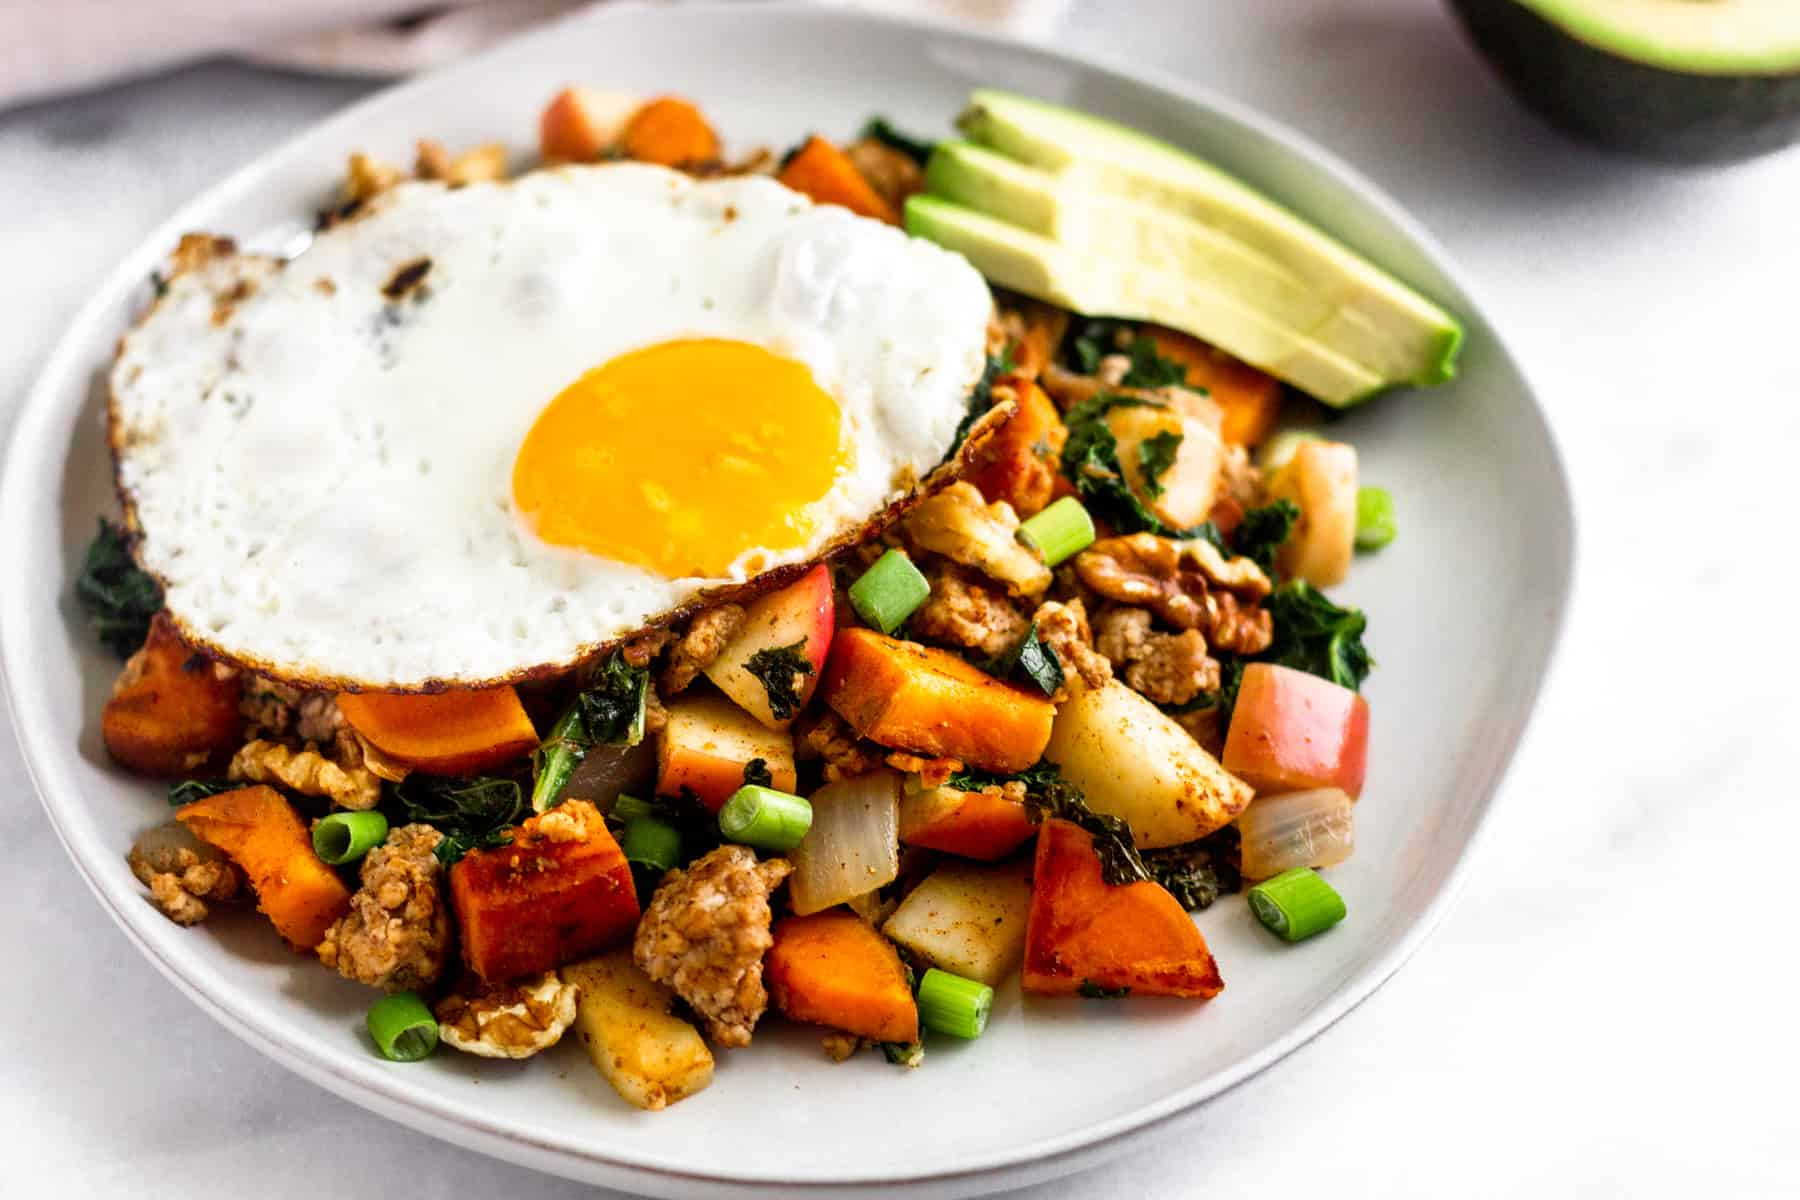 White plate with sausage apple hash, a fried egg, and sliced avocado.